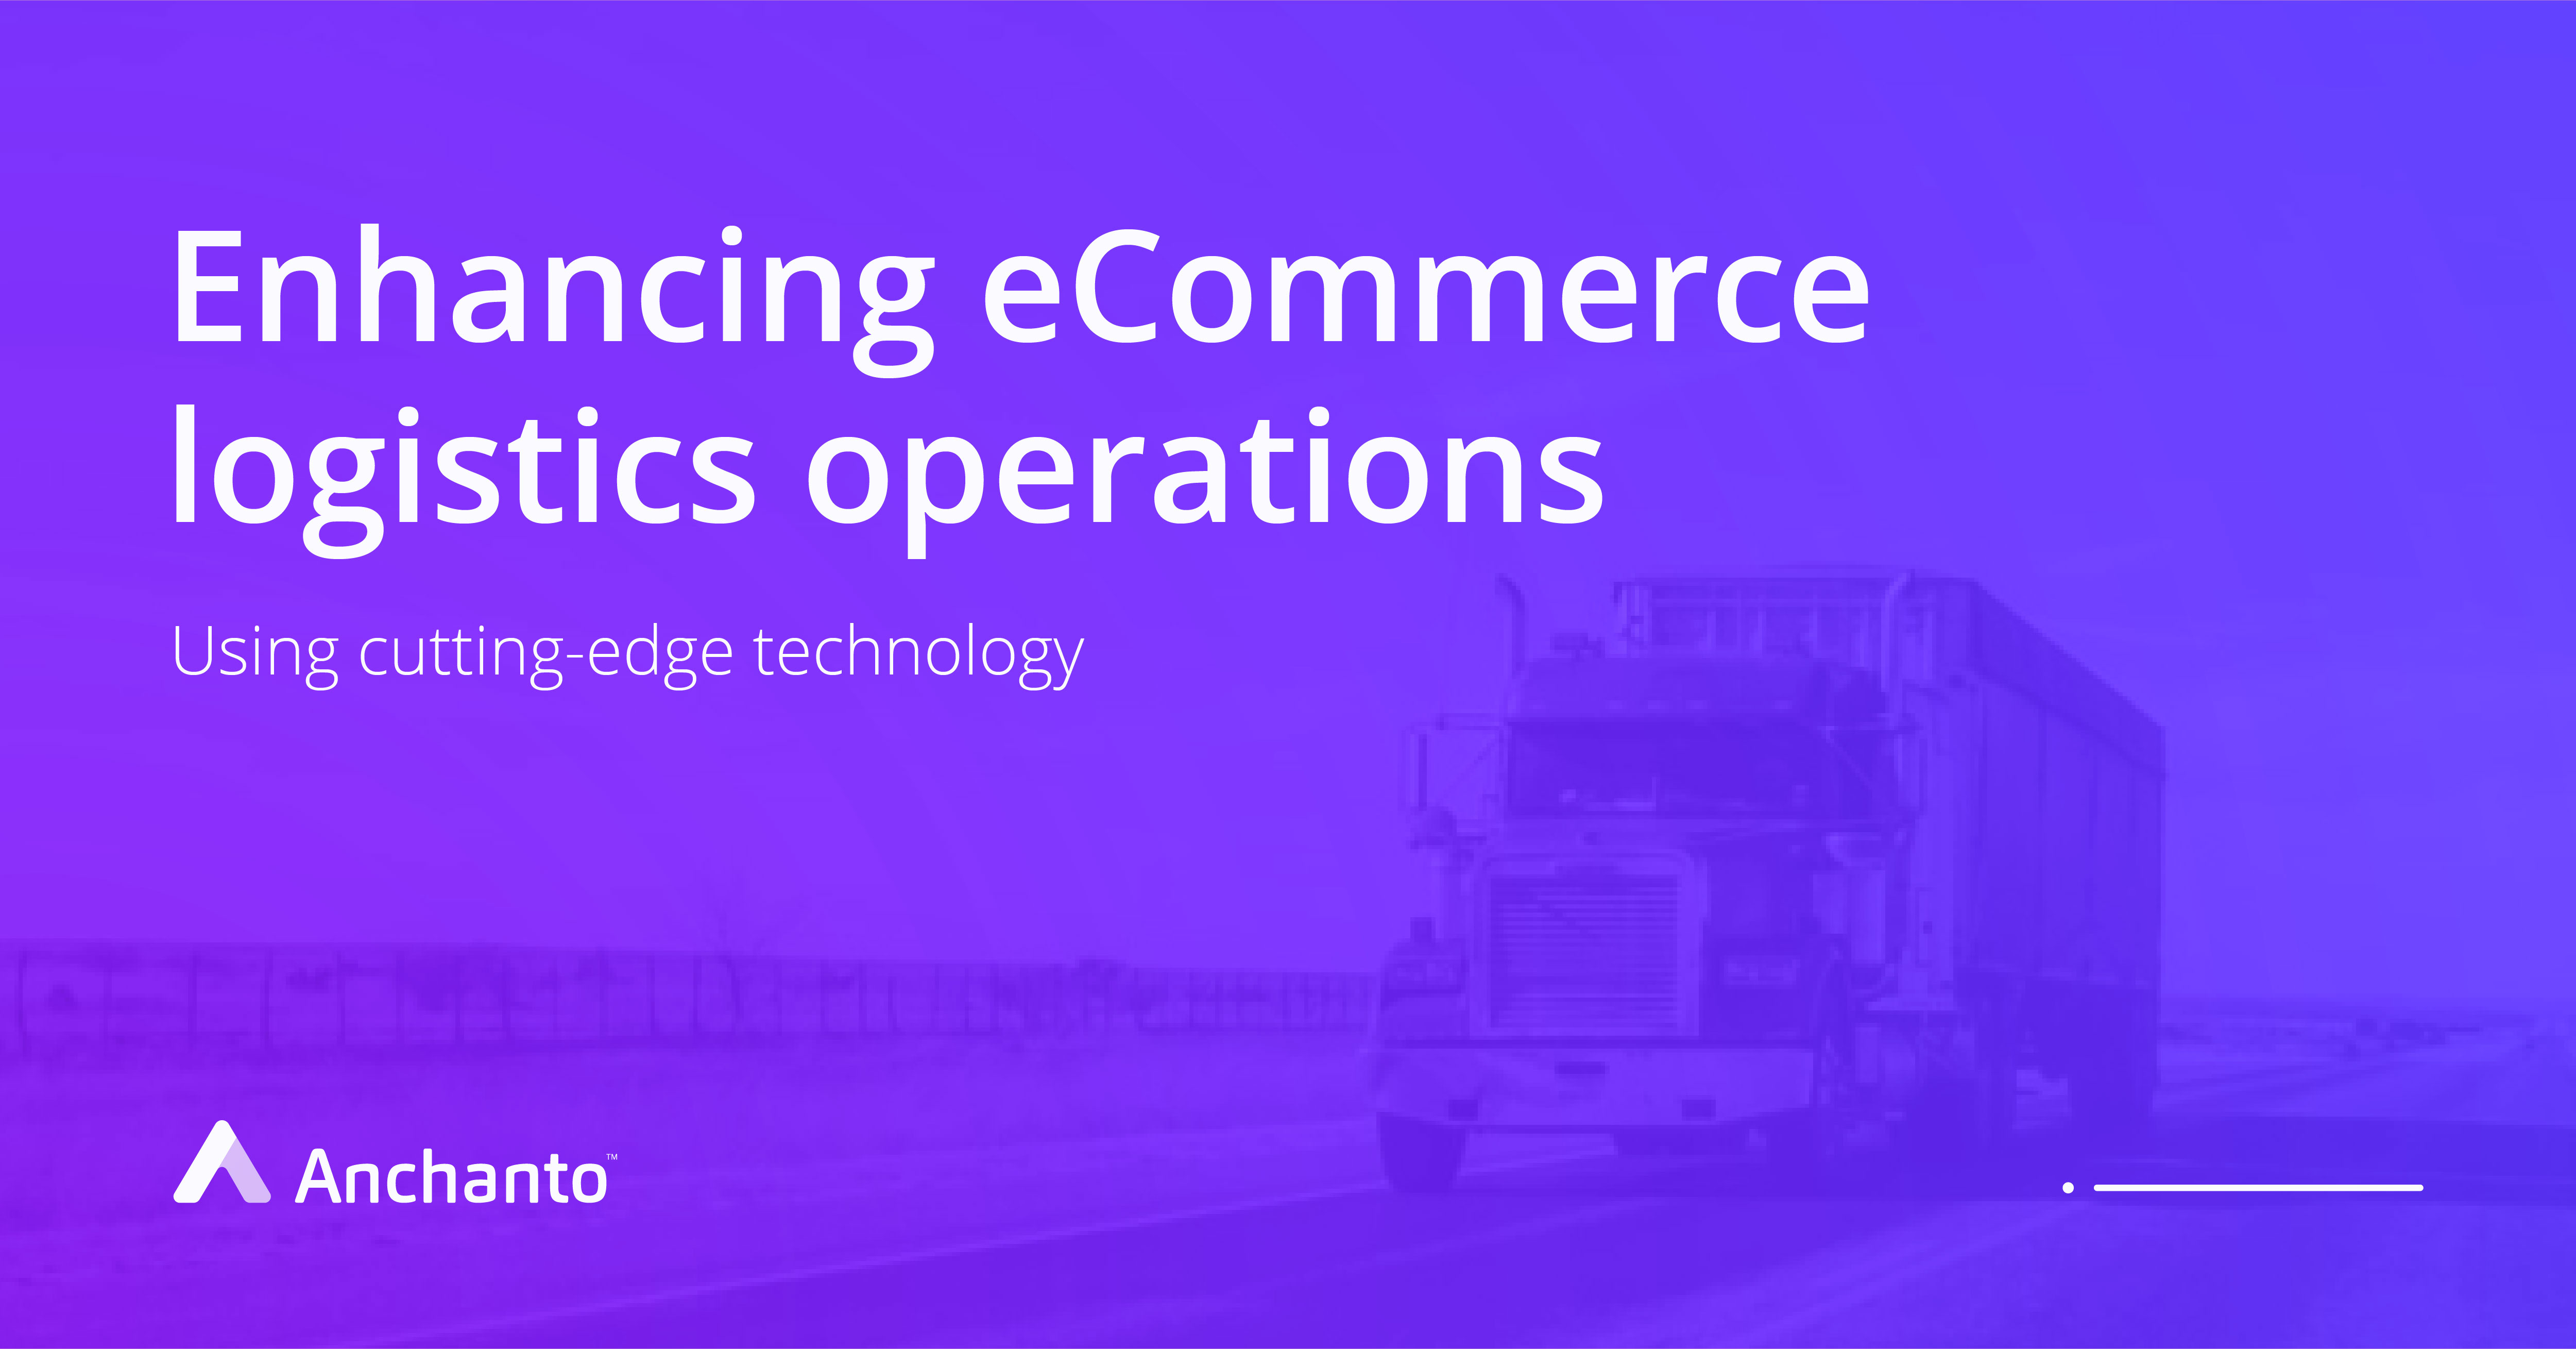 enhancing_ecommerce_logistics_operations_with_cutting_edge_technology